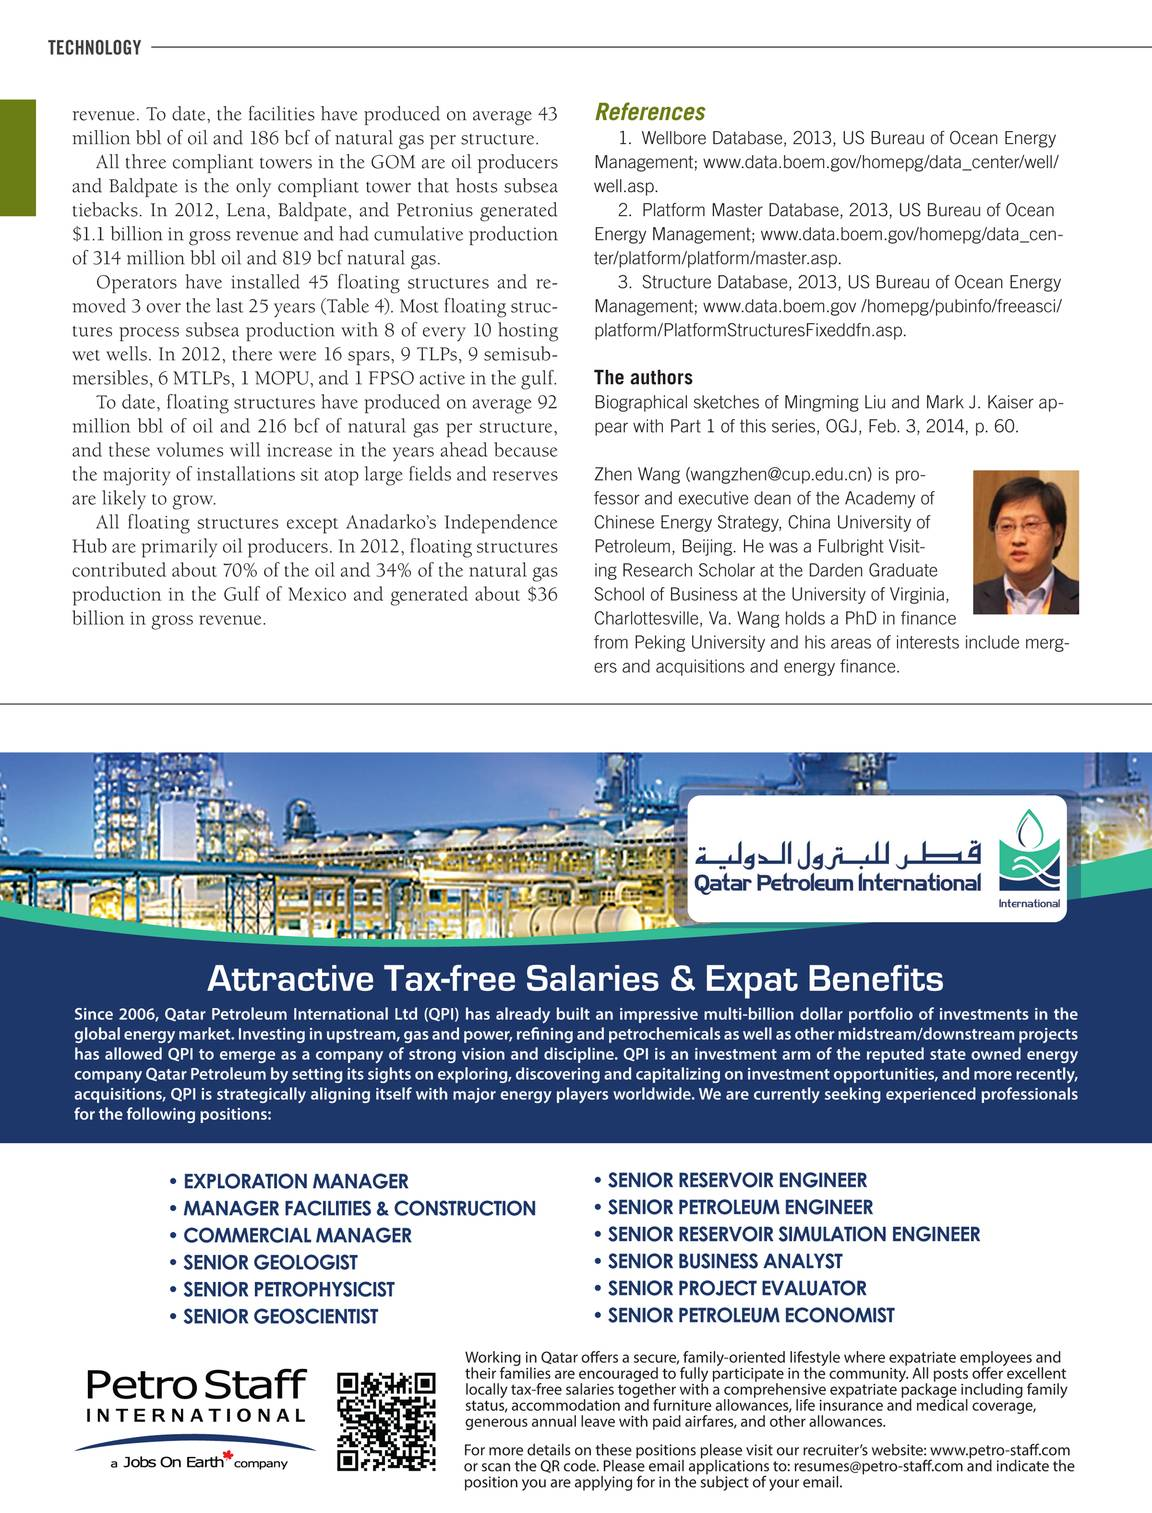 Oil & Gas Journal - March 03, 2014 - page 82